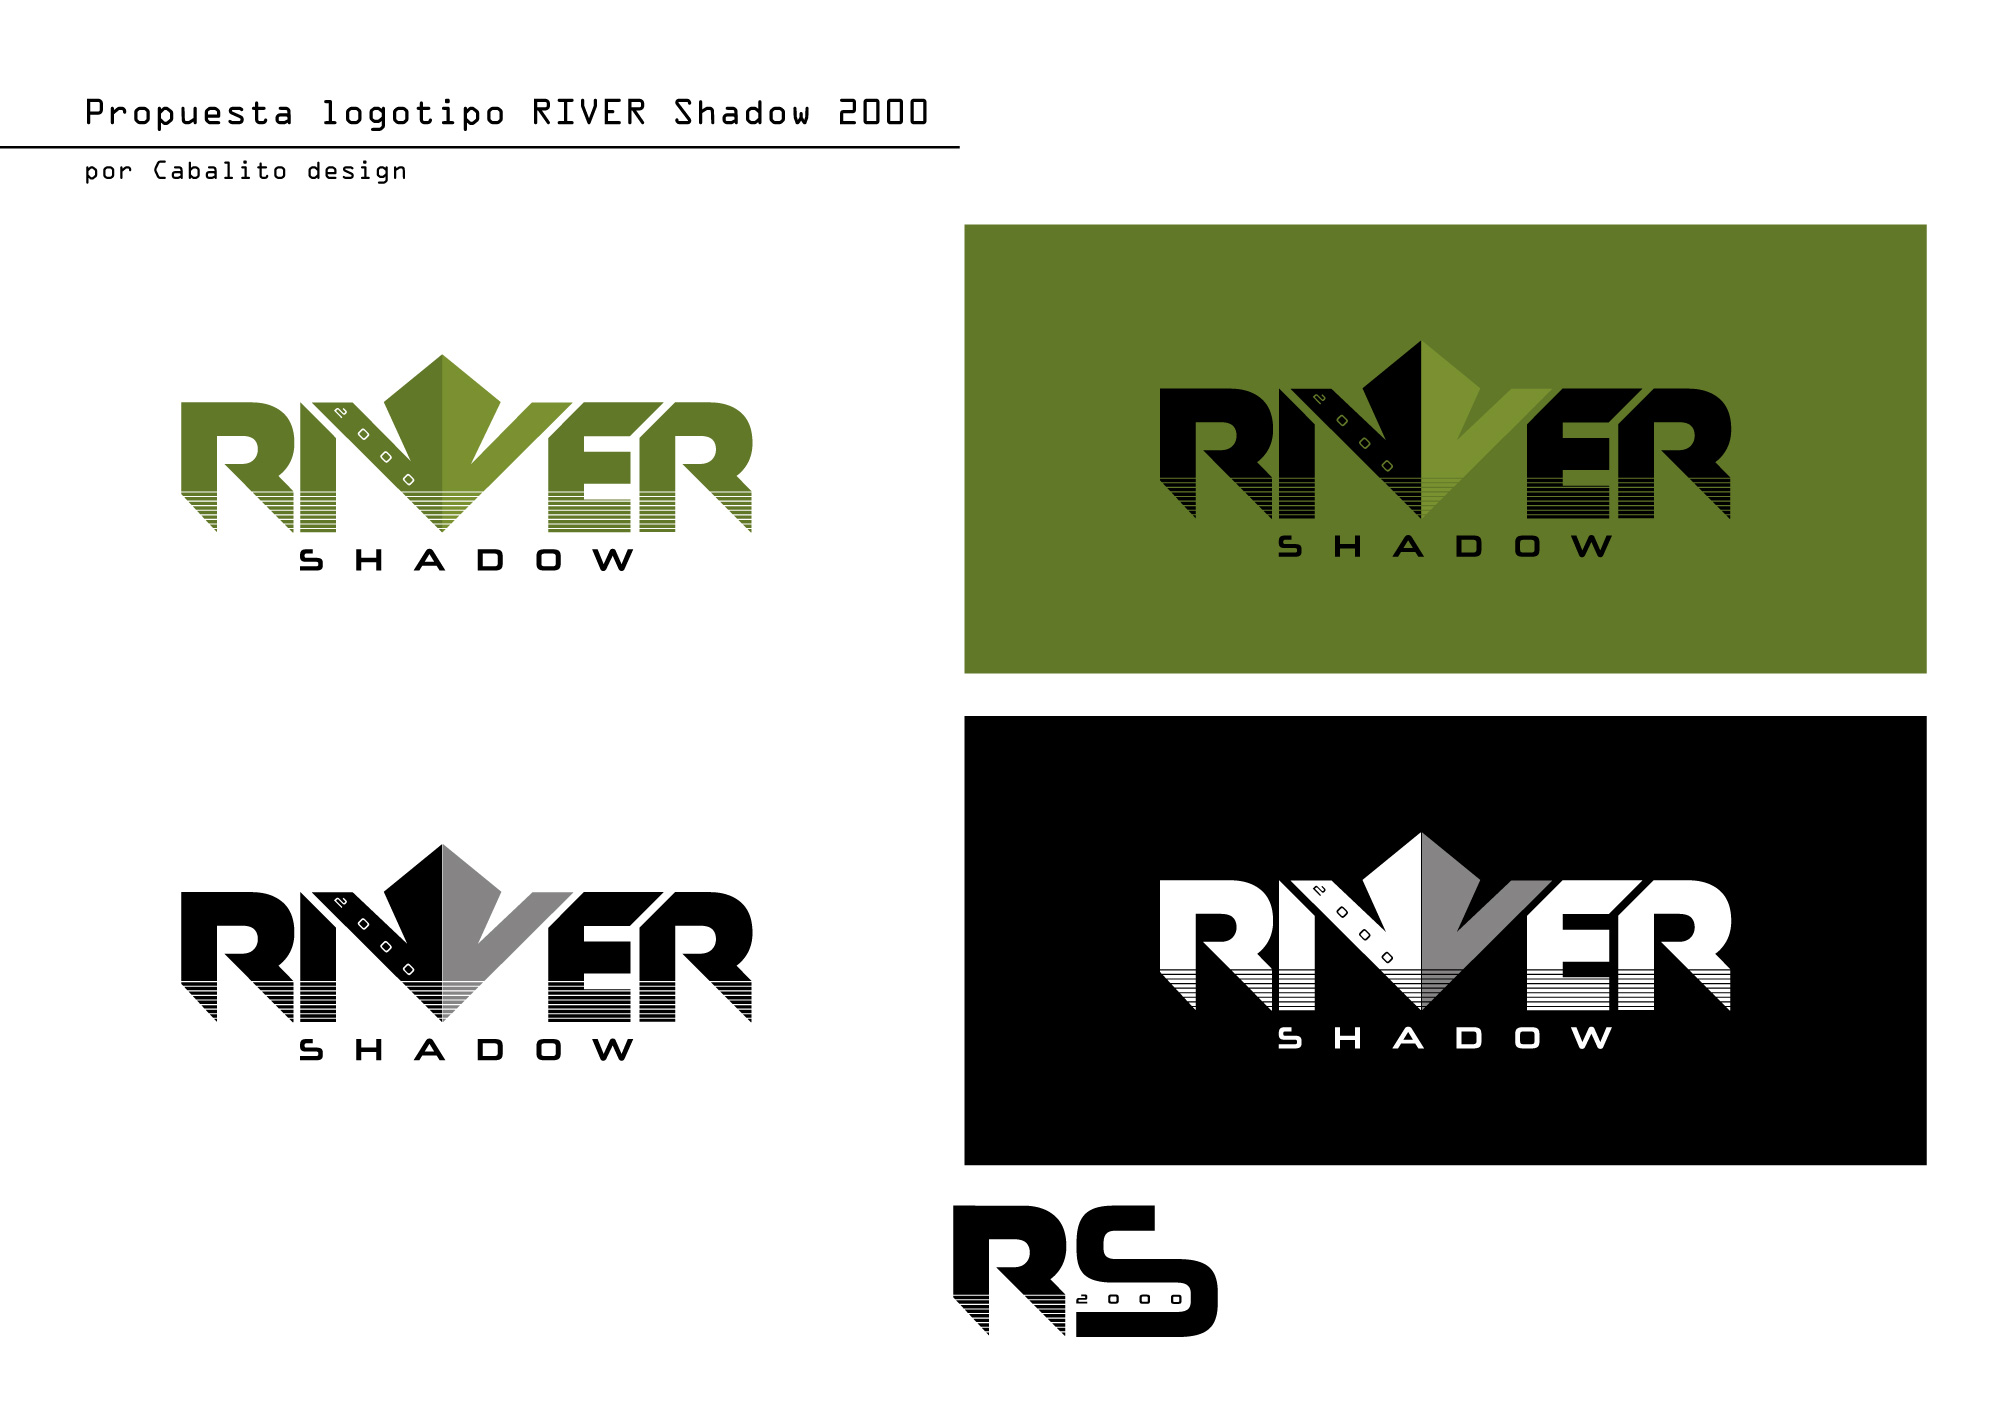 River Shadow logos